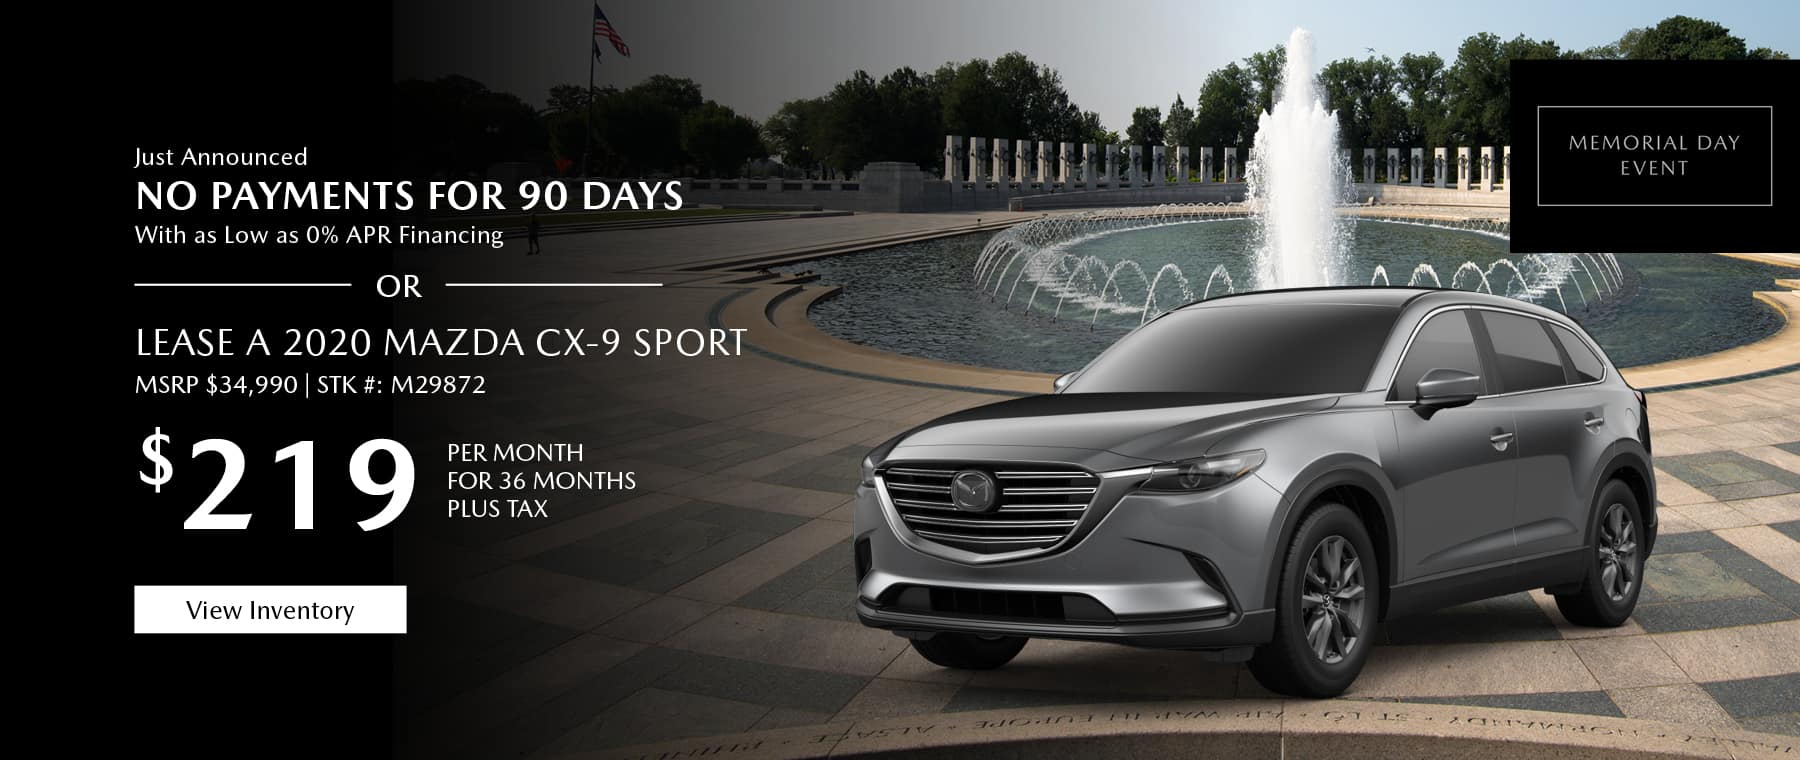 Just Announced, No payments for 90 days with as low as %0 APR financing, or lease the 2020 Mazda CX-9 for $229 per month, plus tax. Gunther will waive your first 2 lease payments. View inventory.